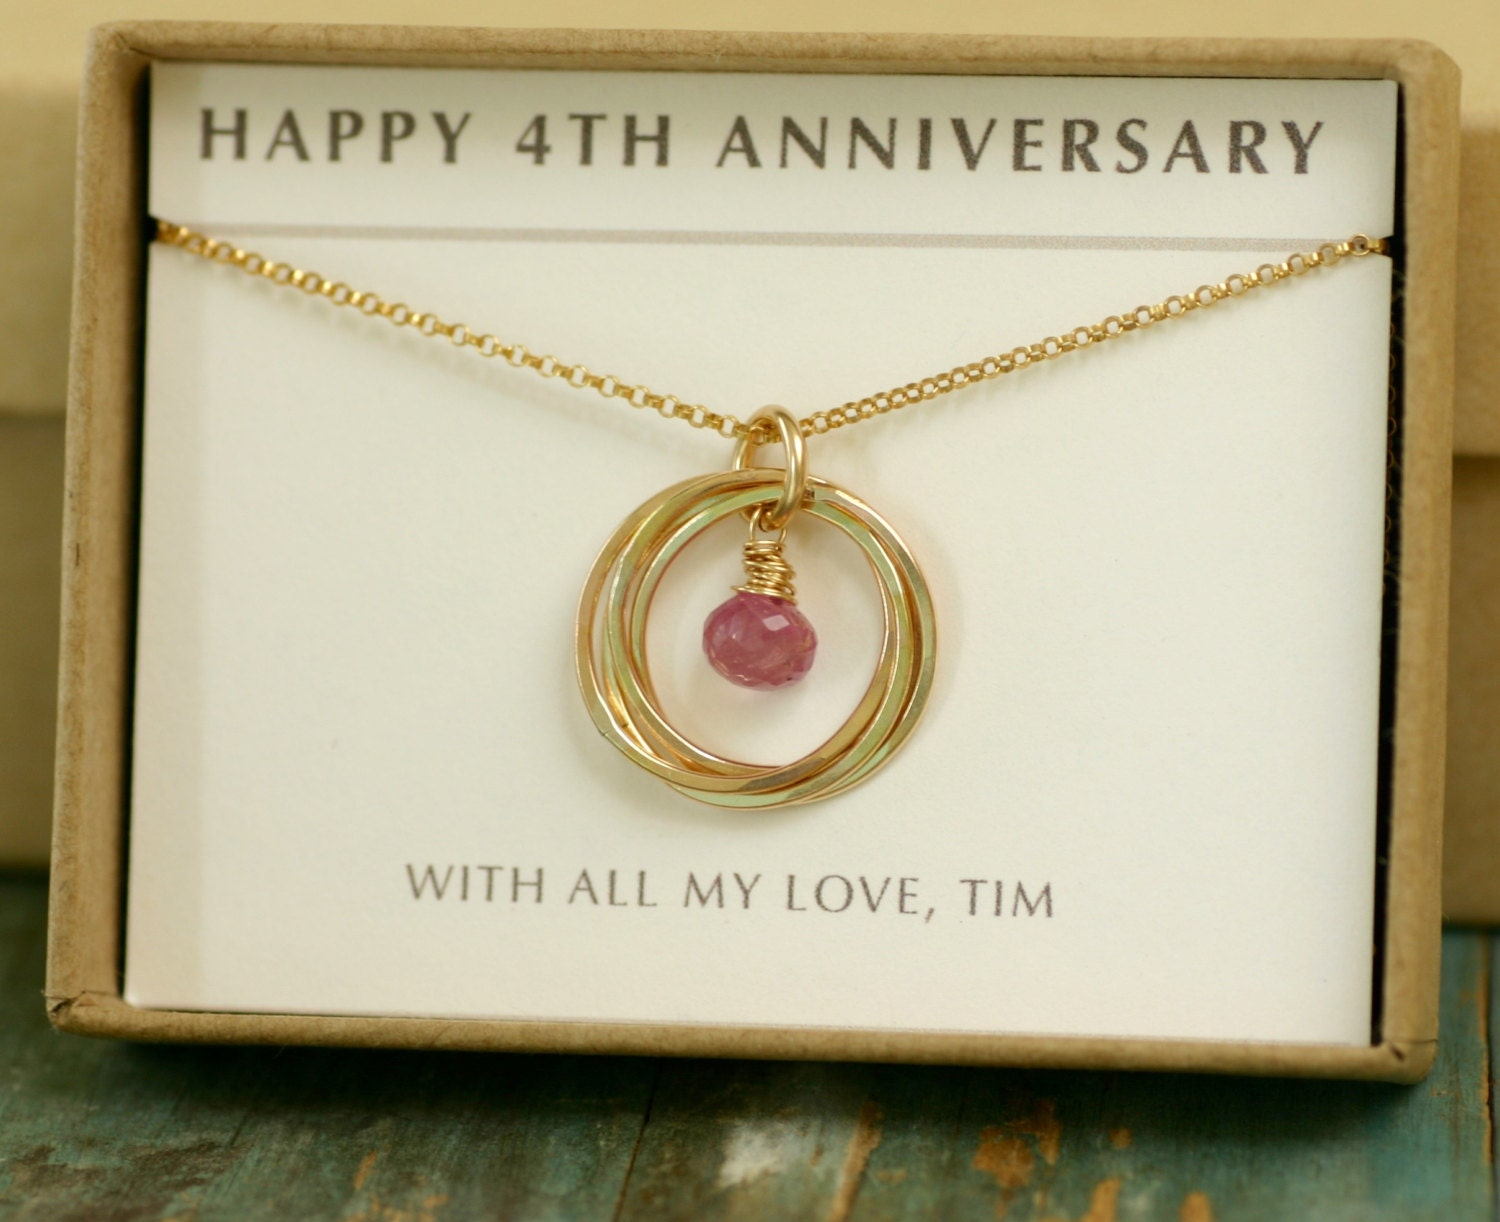 What Gift For 40th Wedding Anniversary: 4th Anniversary Gift 40th Birthday Gift Pink Sapphire